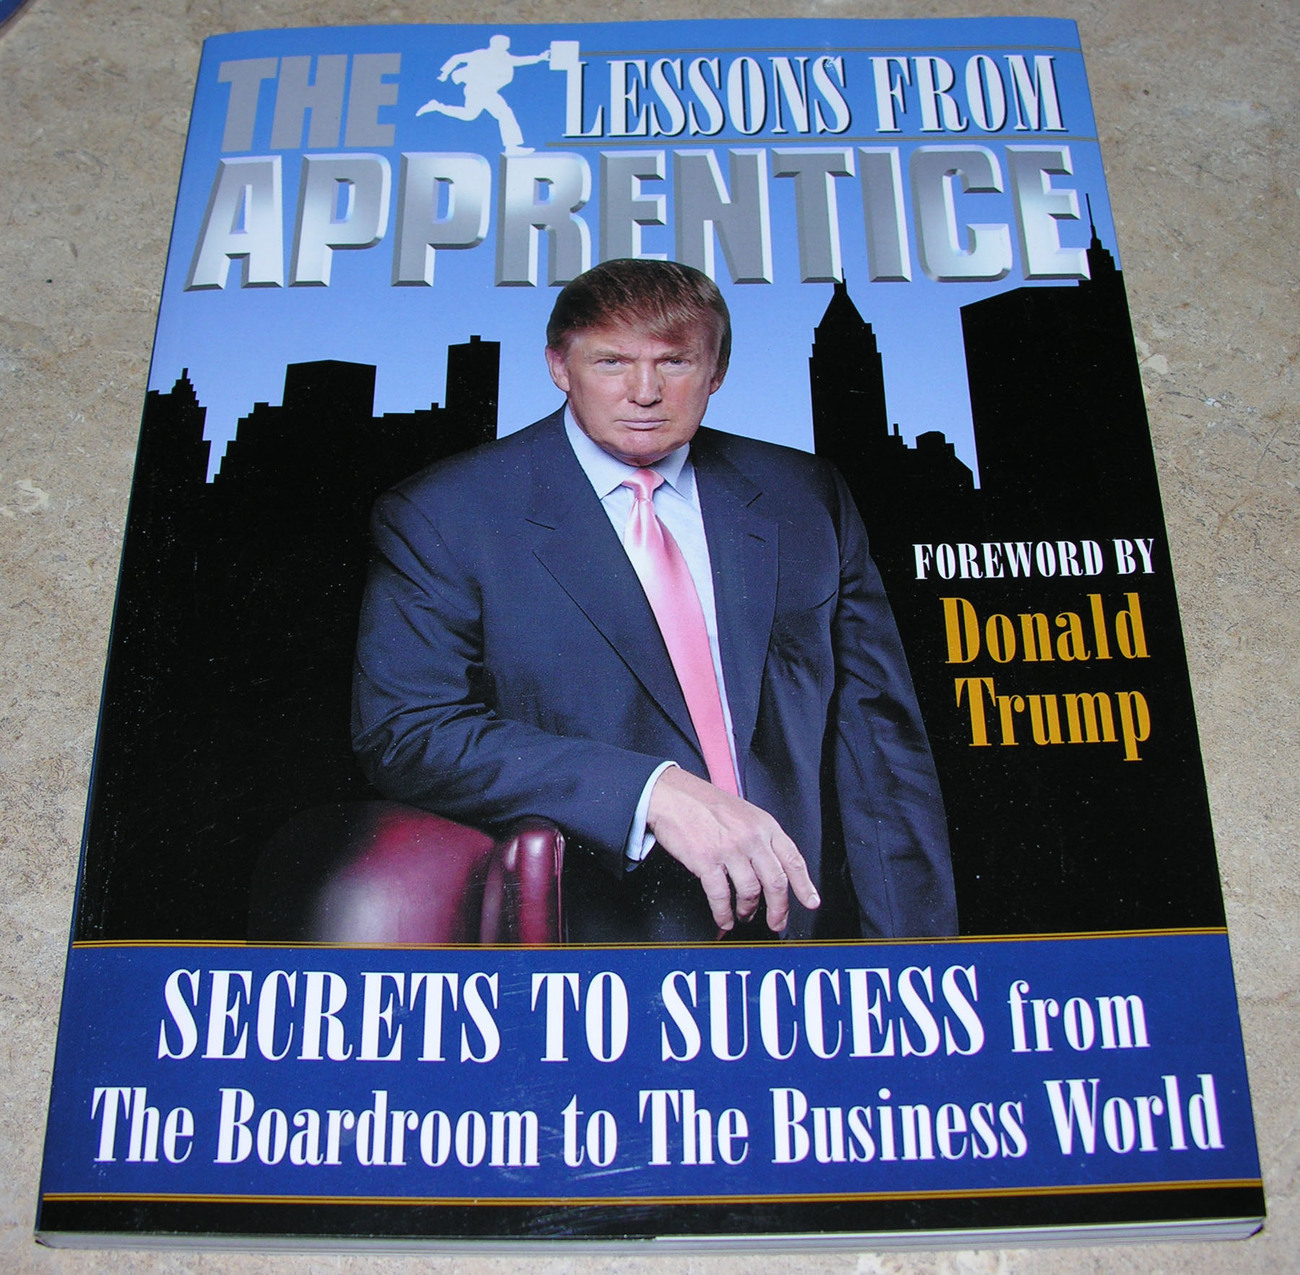 The_apprentice